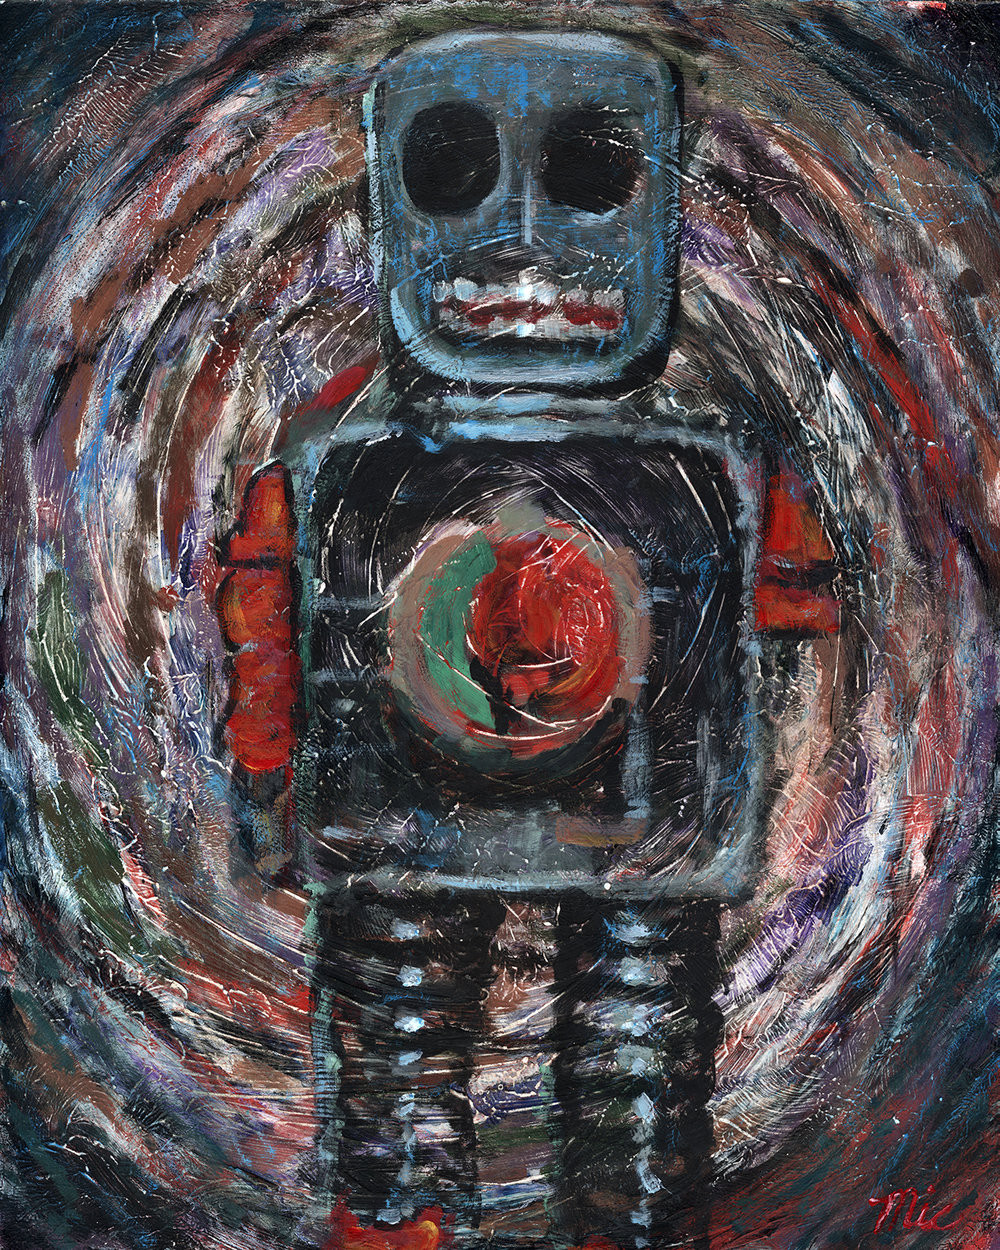 I Am Your Robot - Acrylic Private Collection of Michael and Jennifer LoxtermanGiclee Limited Edition and canvas prints are available. Please visit the prints gallery.